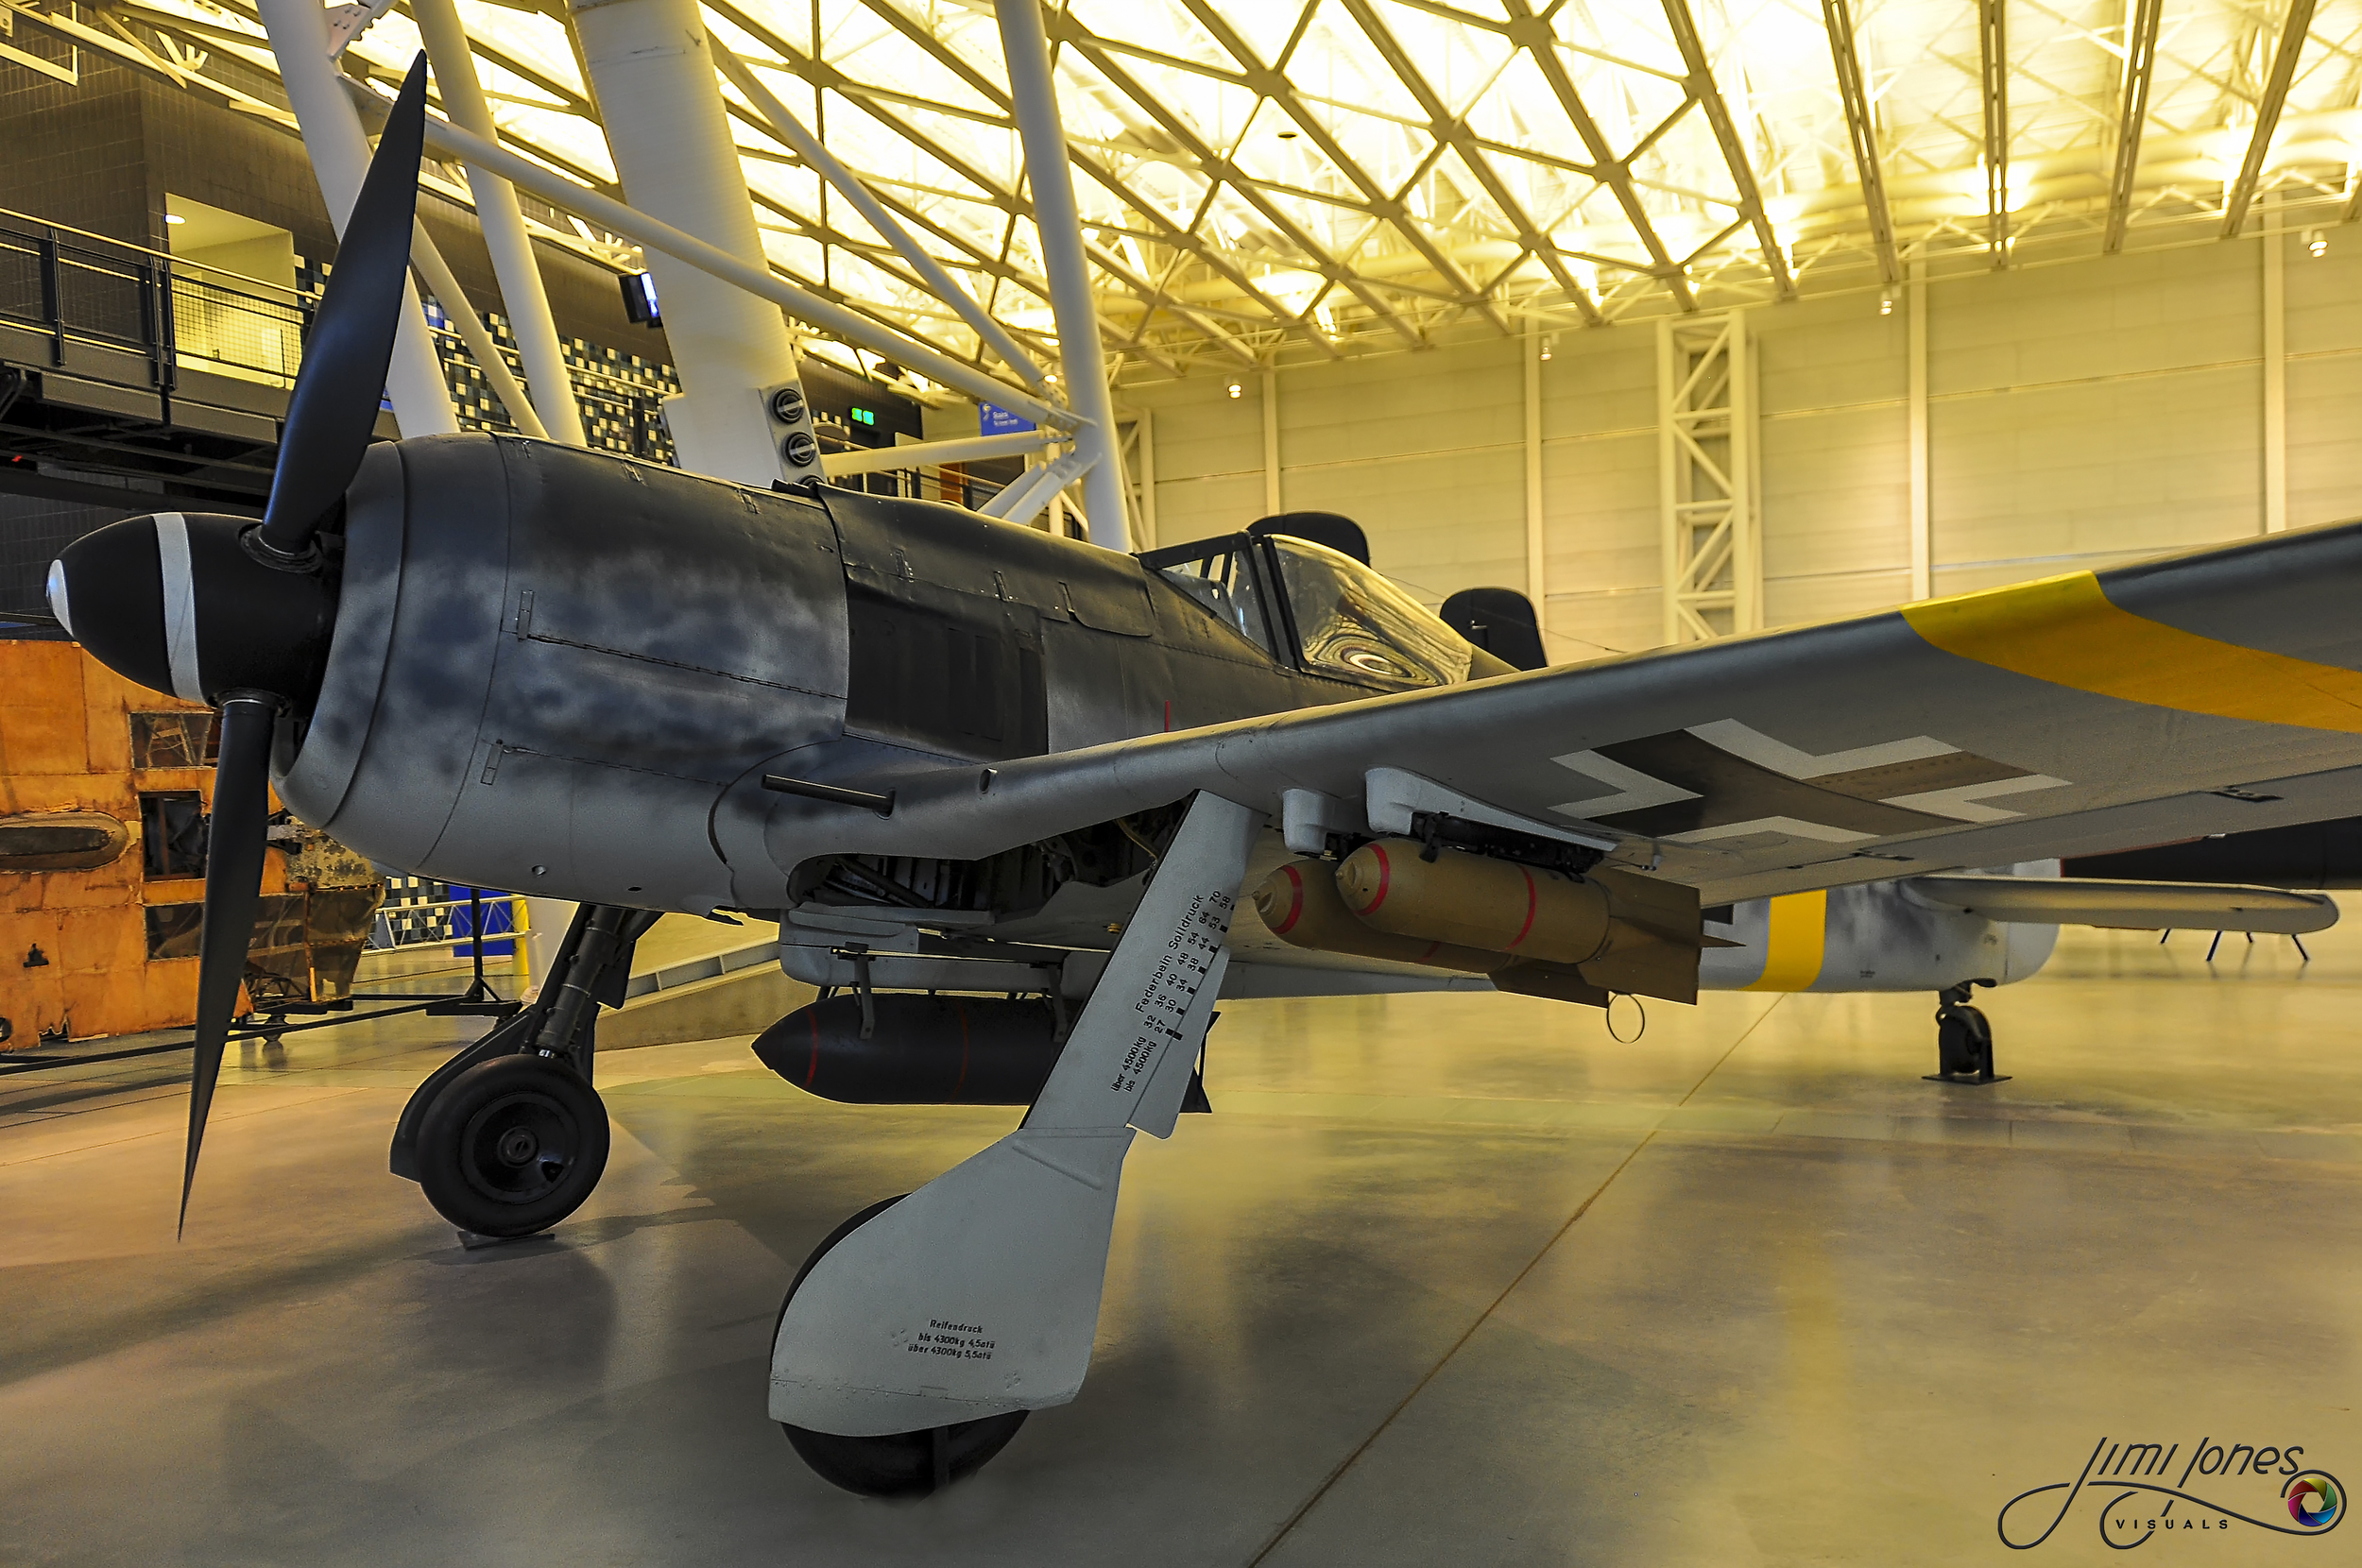 A restored Fw 190 F-8, as seen in the Air & Space Museum, Chantilly Virginia.